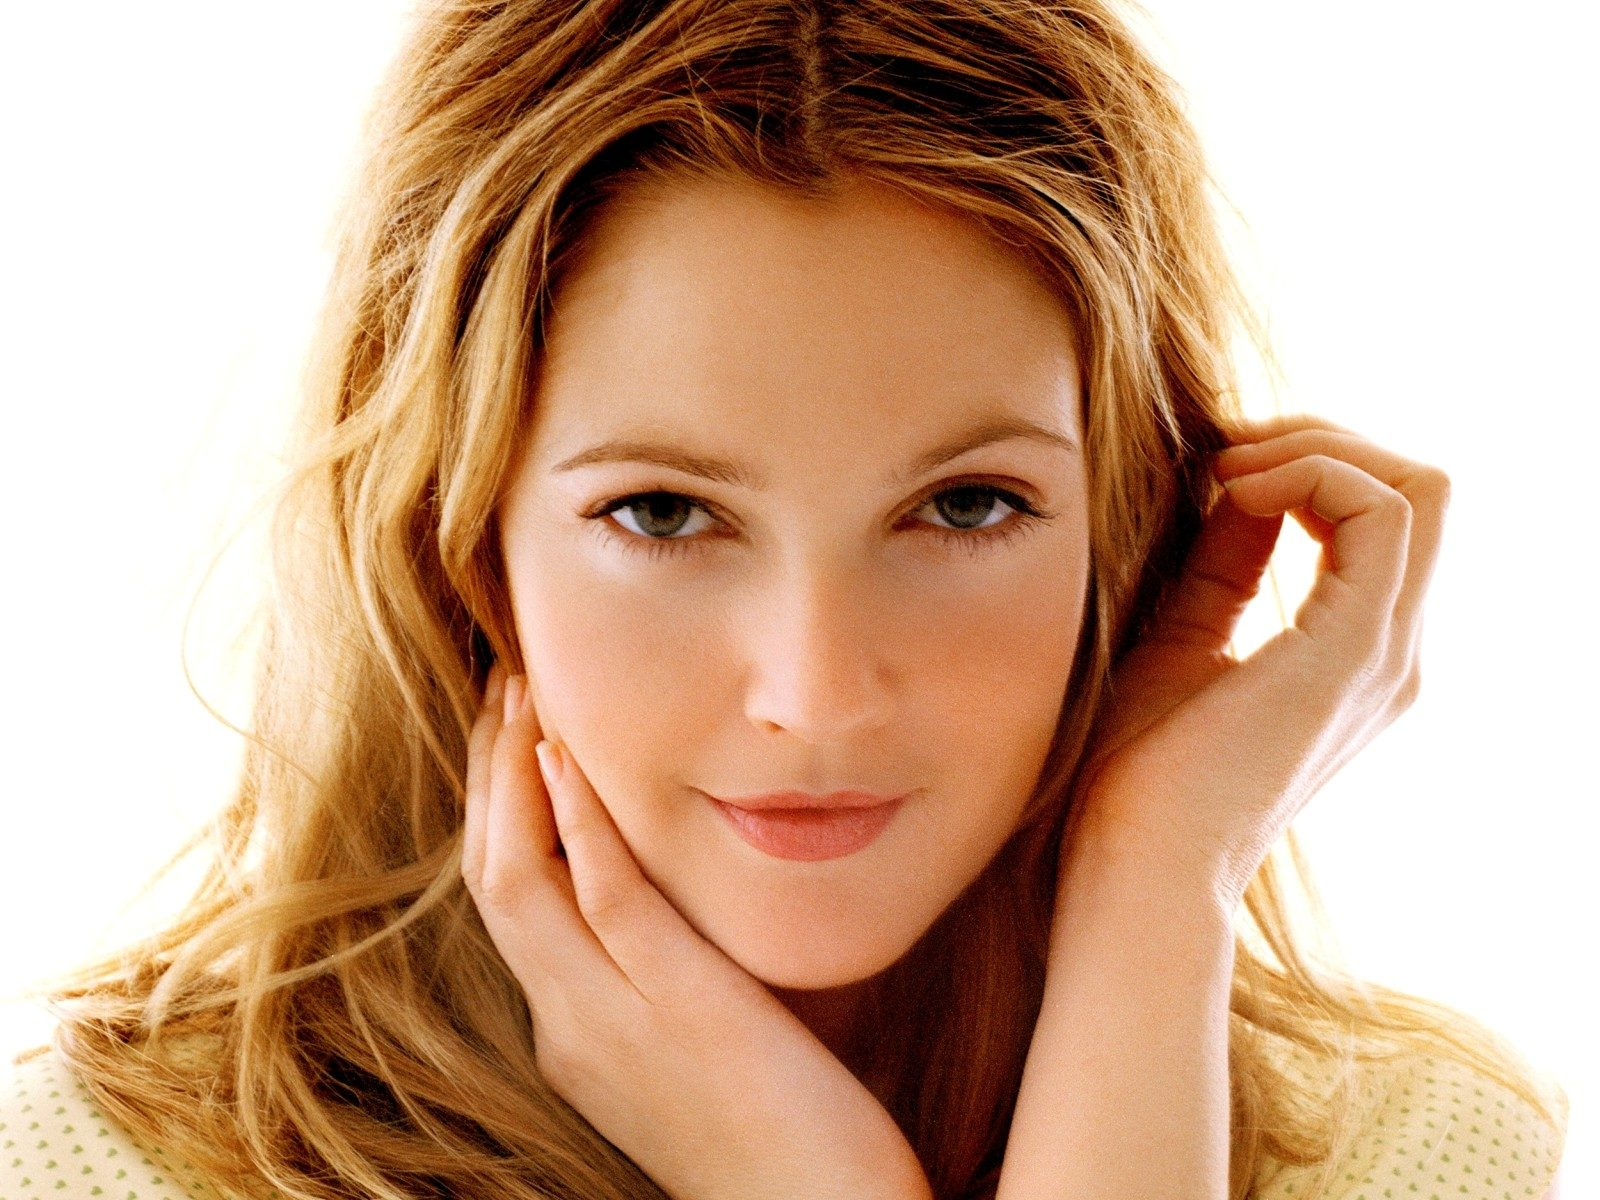 top-10-most-beautiful-women-in-the-world-2013-8-4365219